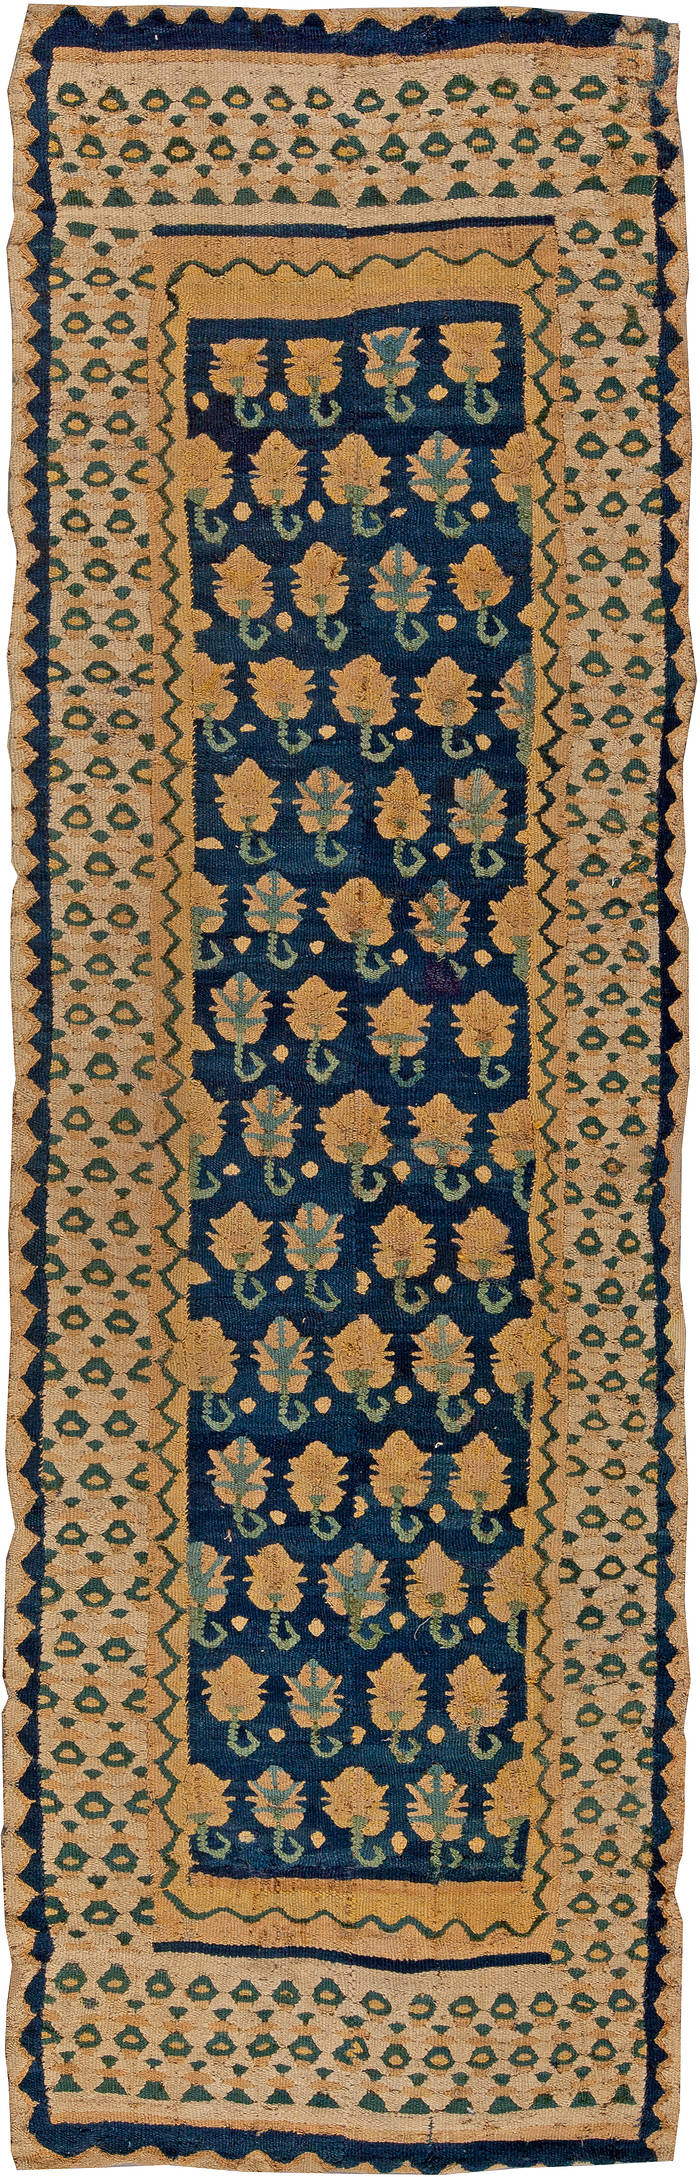 Antique Spanish Flat-Weave Runner Rug BB5416